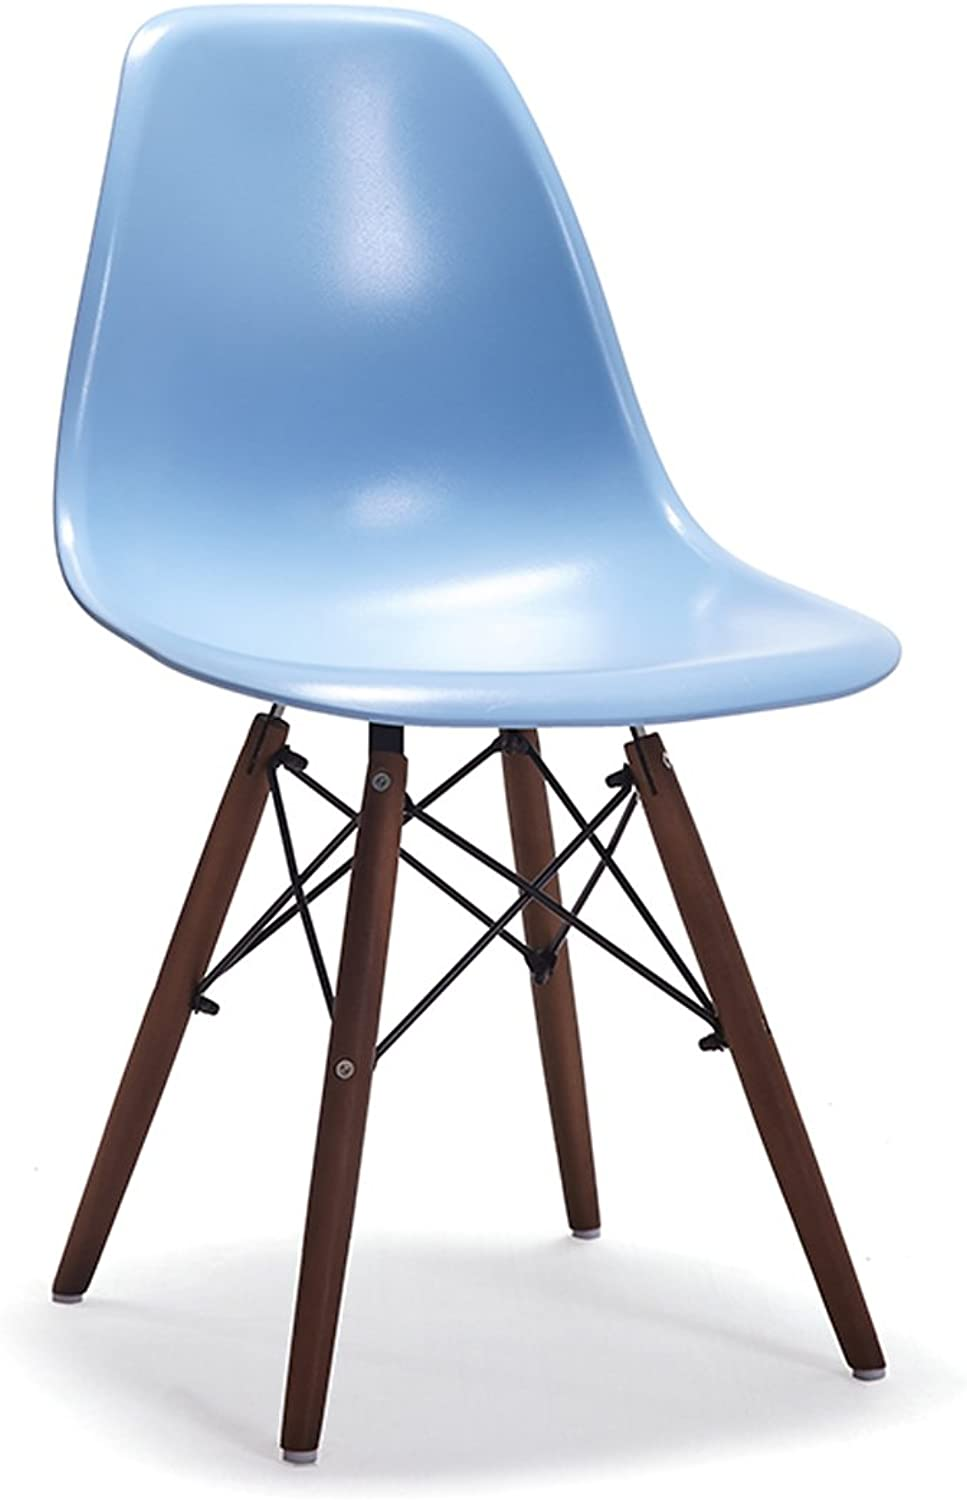 HZB European Chairs, Stools, Household Backrest Plastic Chairs, Creative and Concise Chair for Negotiation